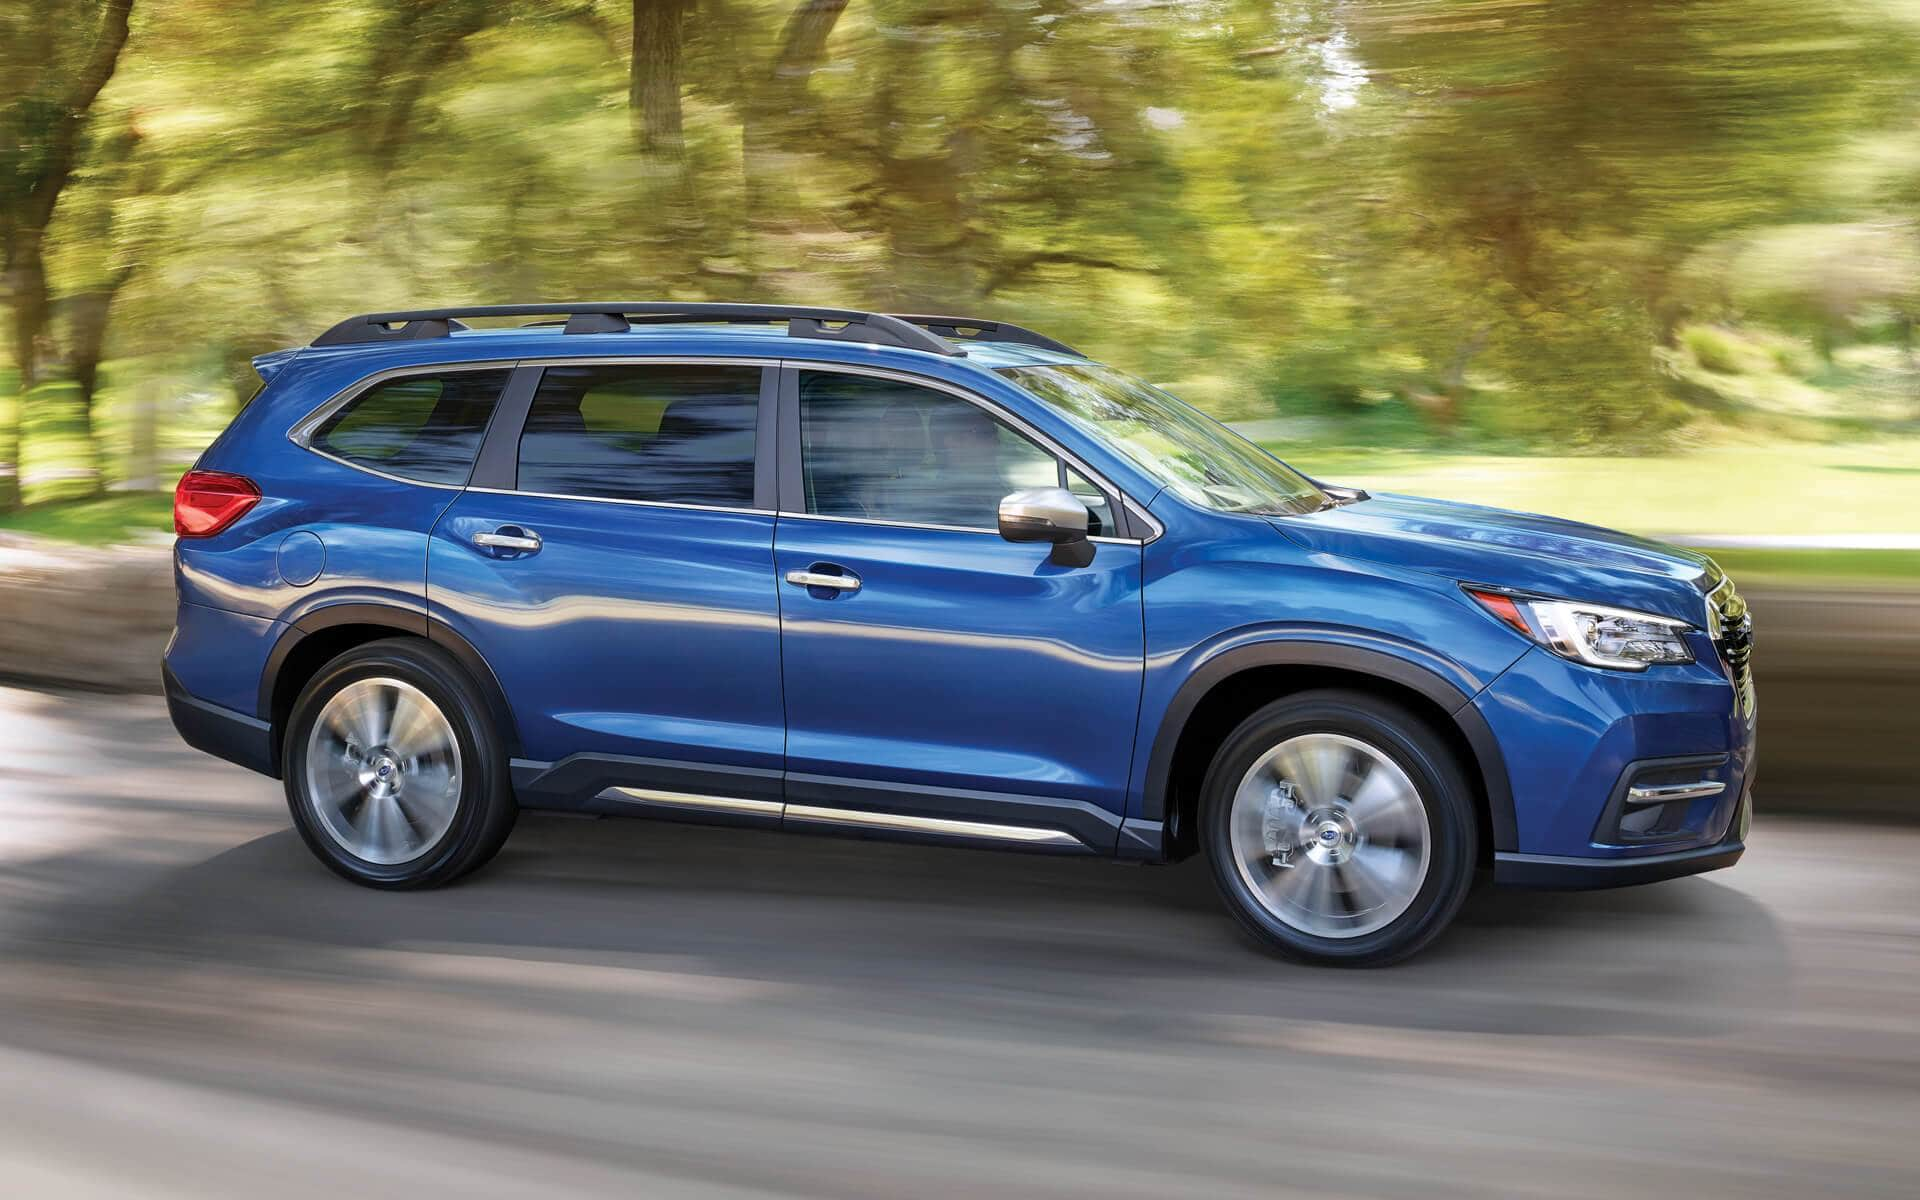 65 Gallery of 2020 Subaru Ascent Ground Clearance Overview by 2020 Subaru Ascent Ground Clearance